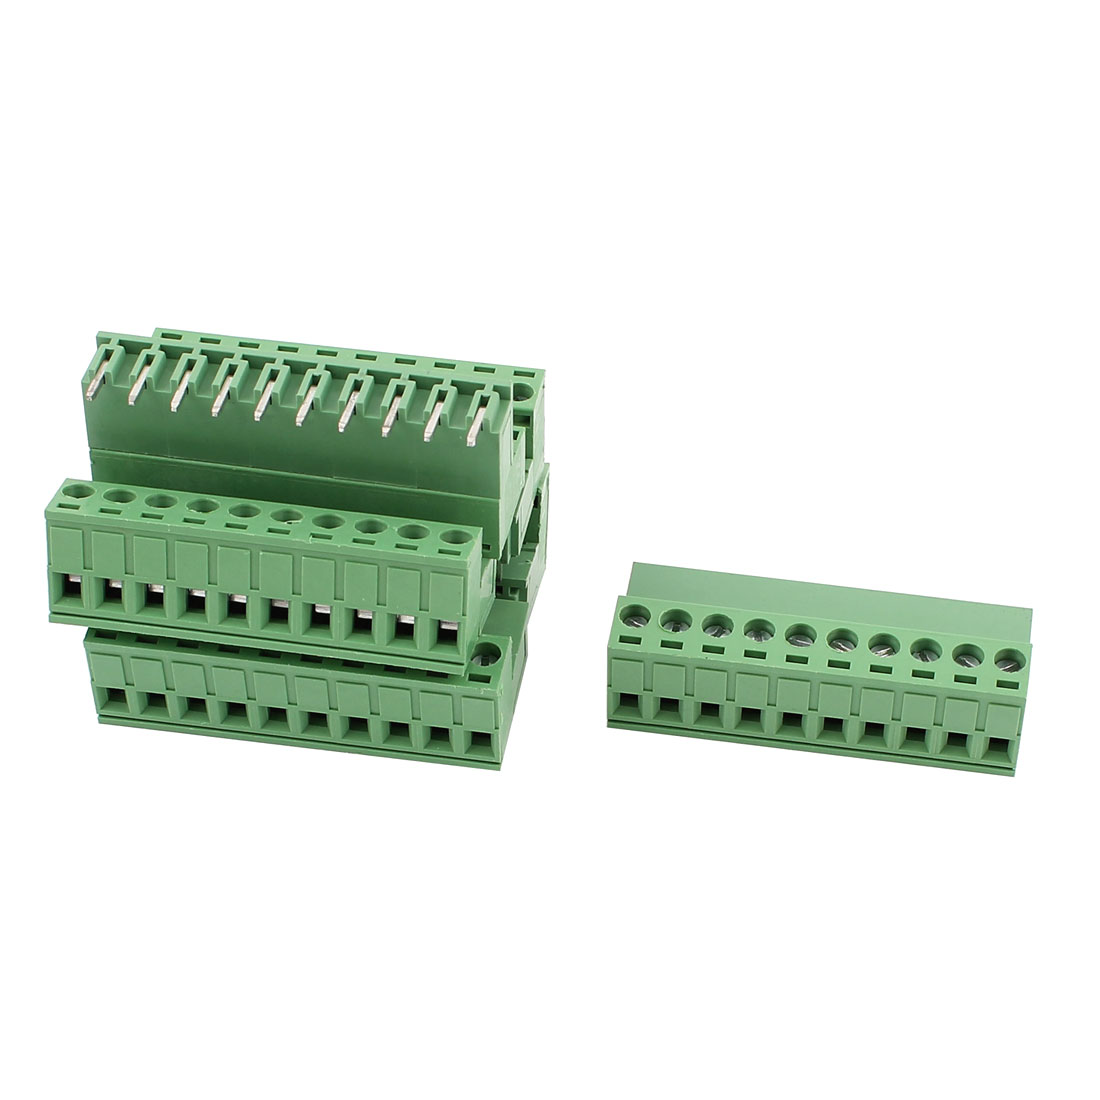 6 Pcs AC 300V 10A 10 Pins PCB Screw Terminal Block Adapter 5.08mm Pitch Green